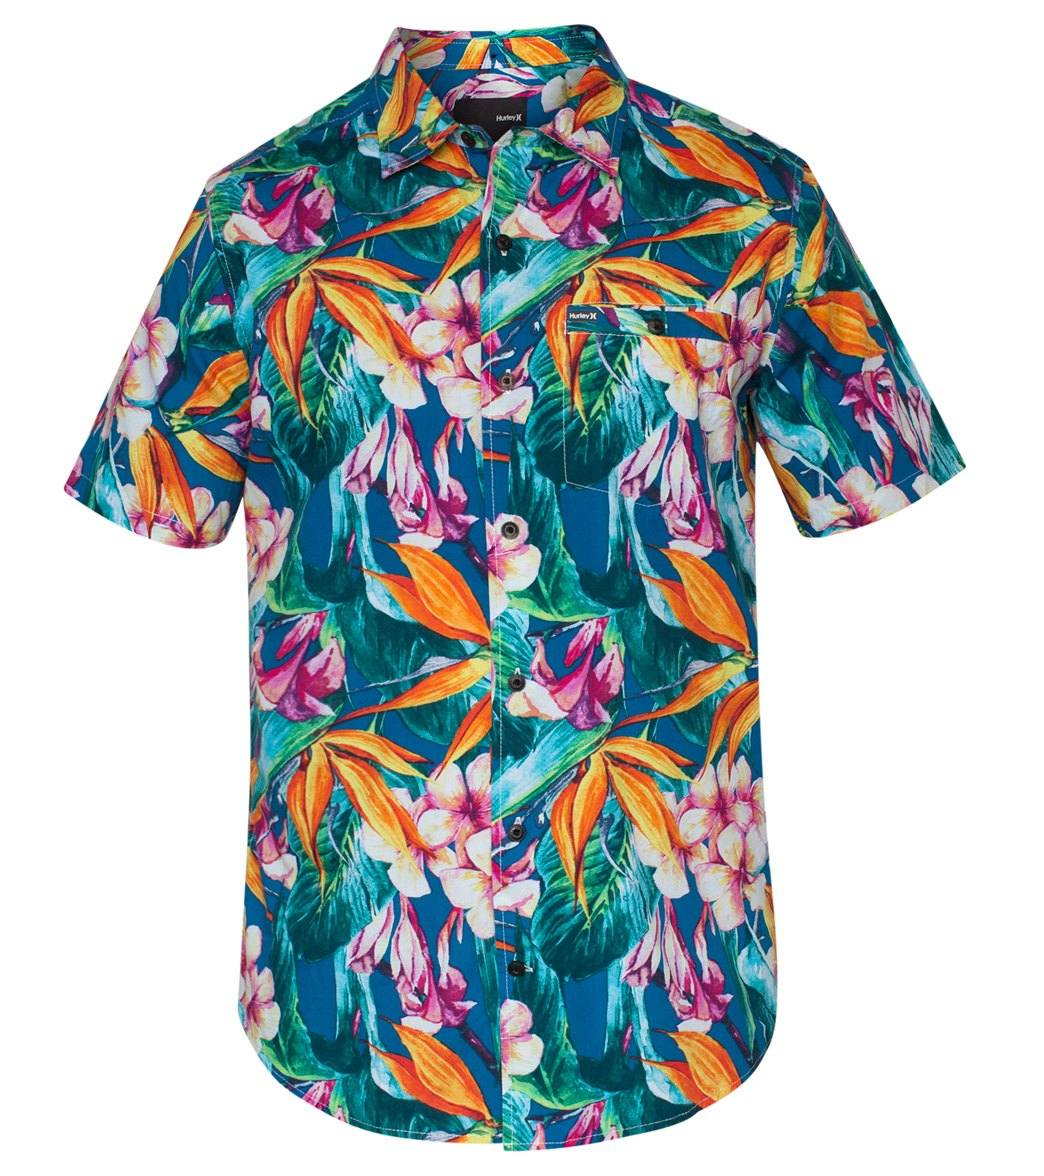 38a5e826bd3 Hurley Men s Beach Cruiser Short Sleeve Shirt at SwimOutlet.com - Free  Shipping